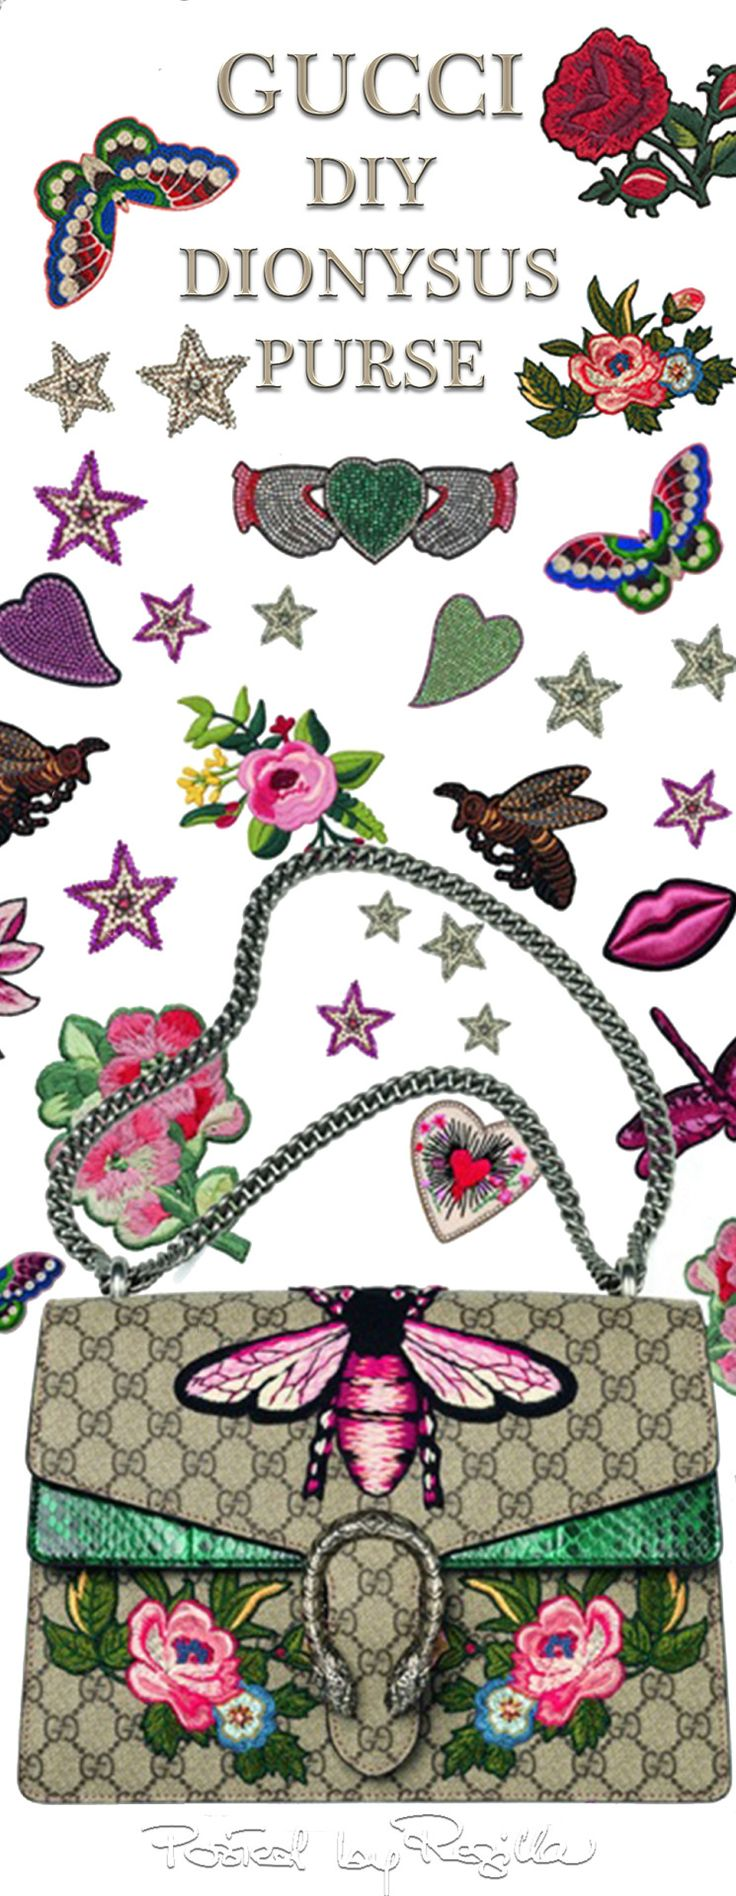 Regilla ⚜ May 2016, Gucci Launches a DIY Service to Customize Its Famous Dionysus Purse